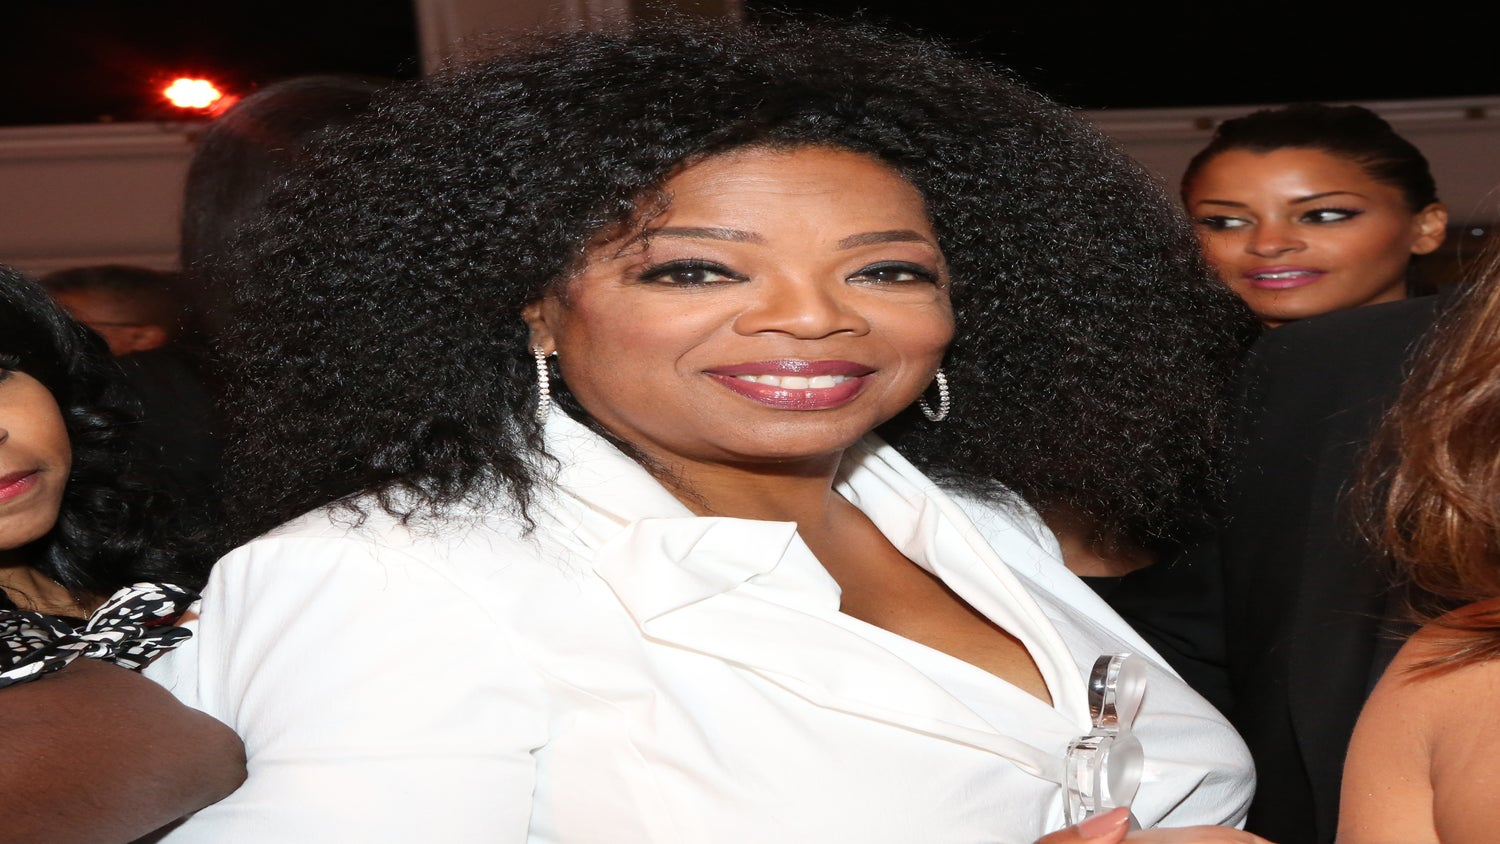 Oprah: 'To Deny Your Age Is to Deny Your Life'